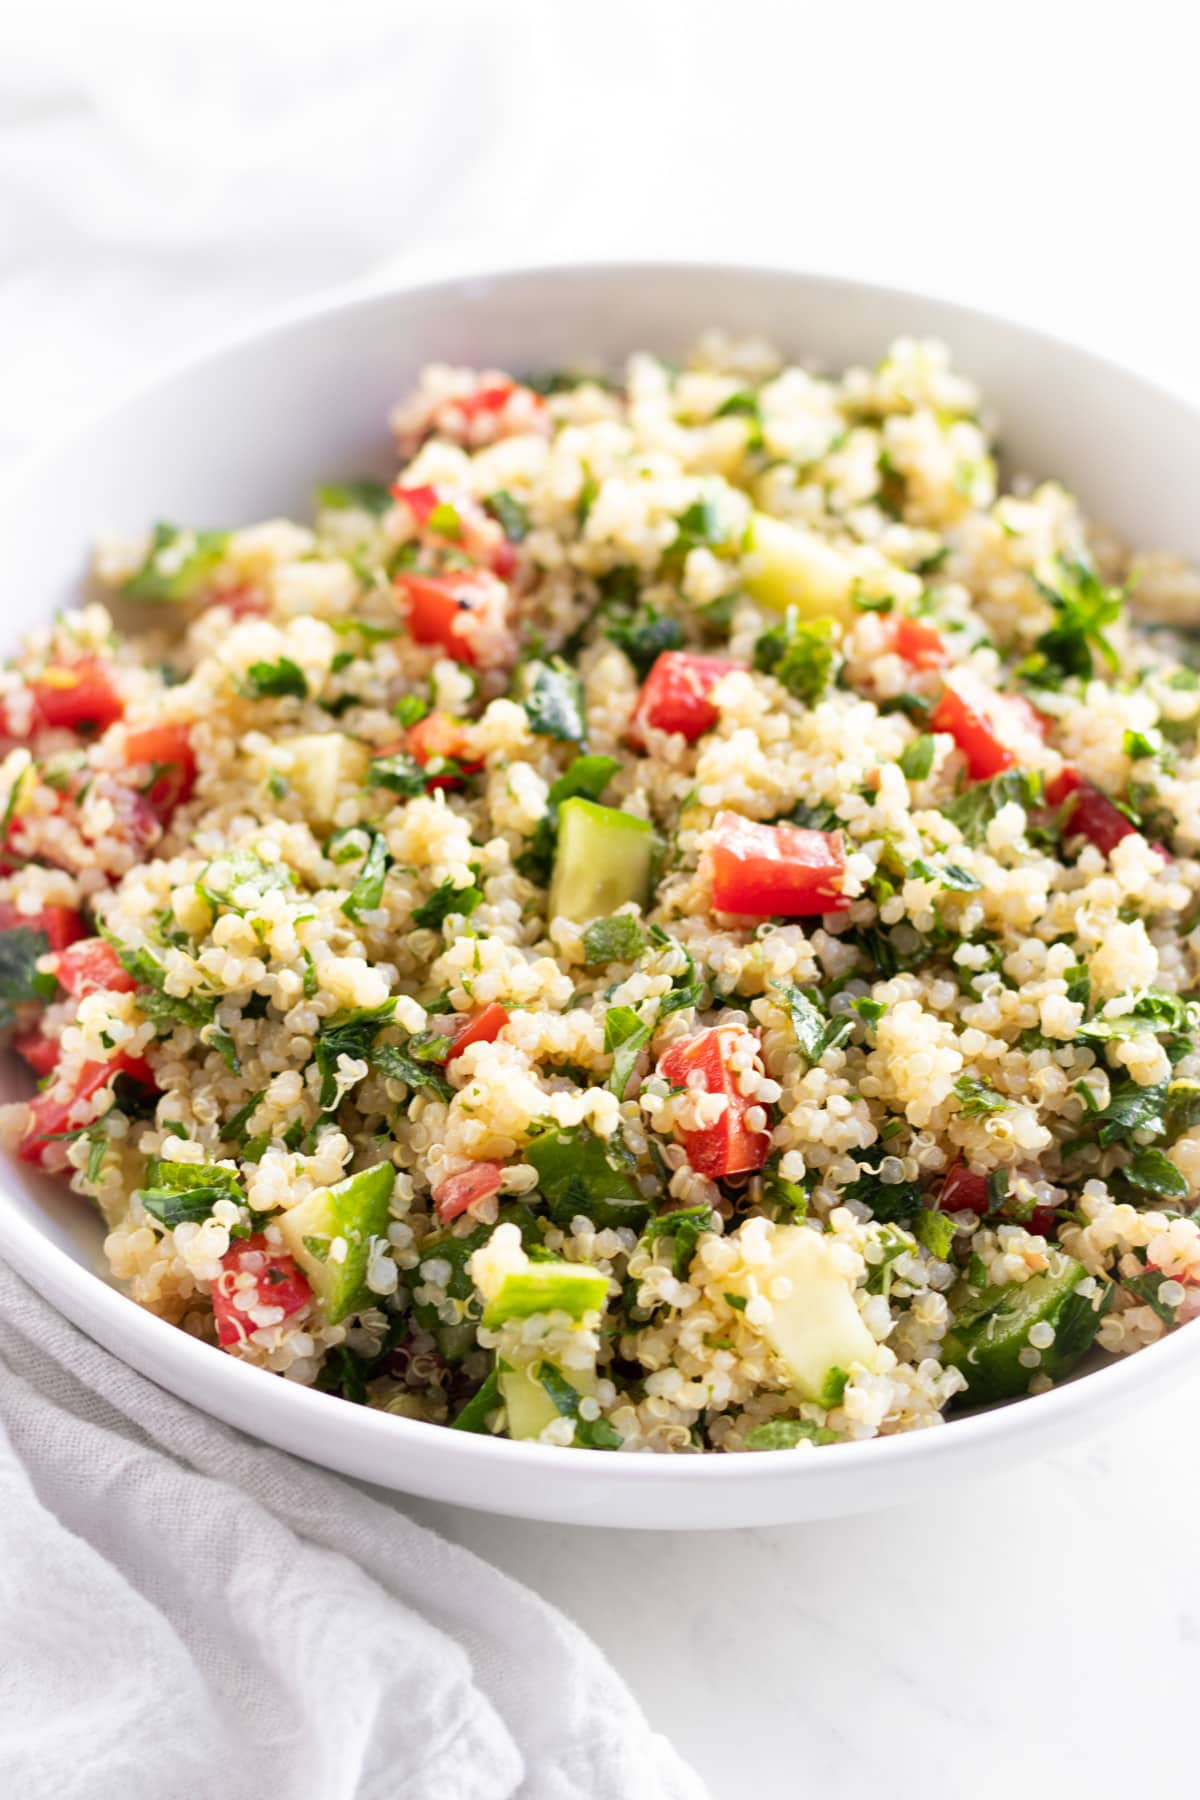 Close up of a grain salad made with quinoa, tomatoes, cucumber, and fresh herbs